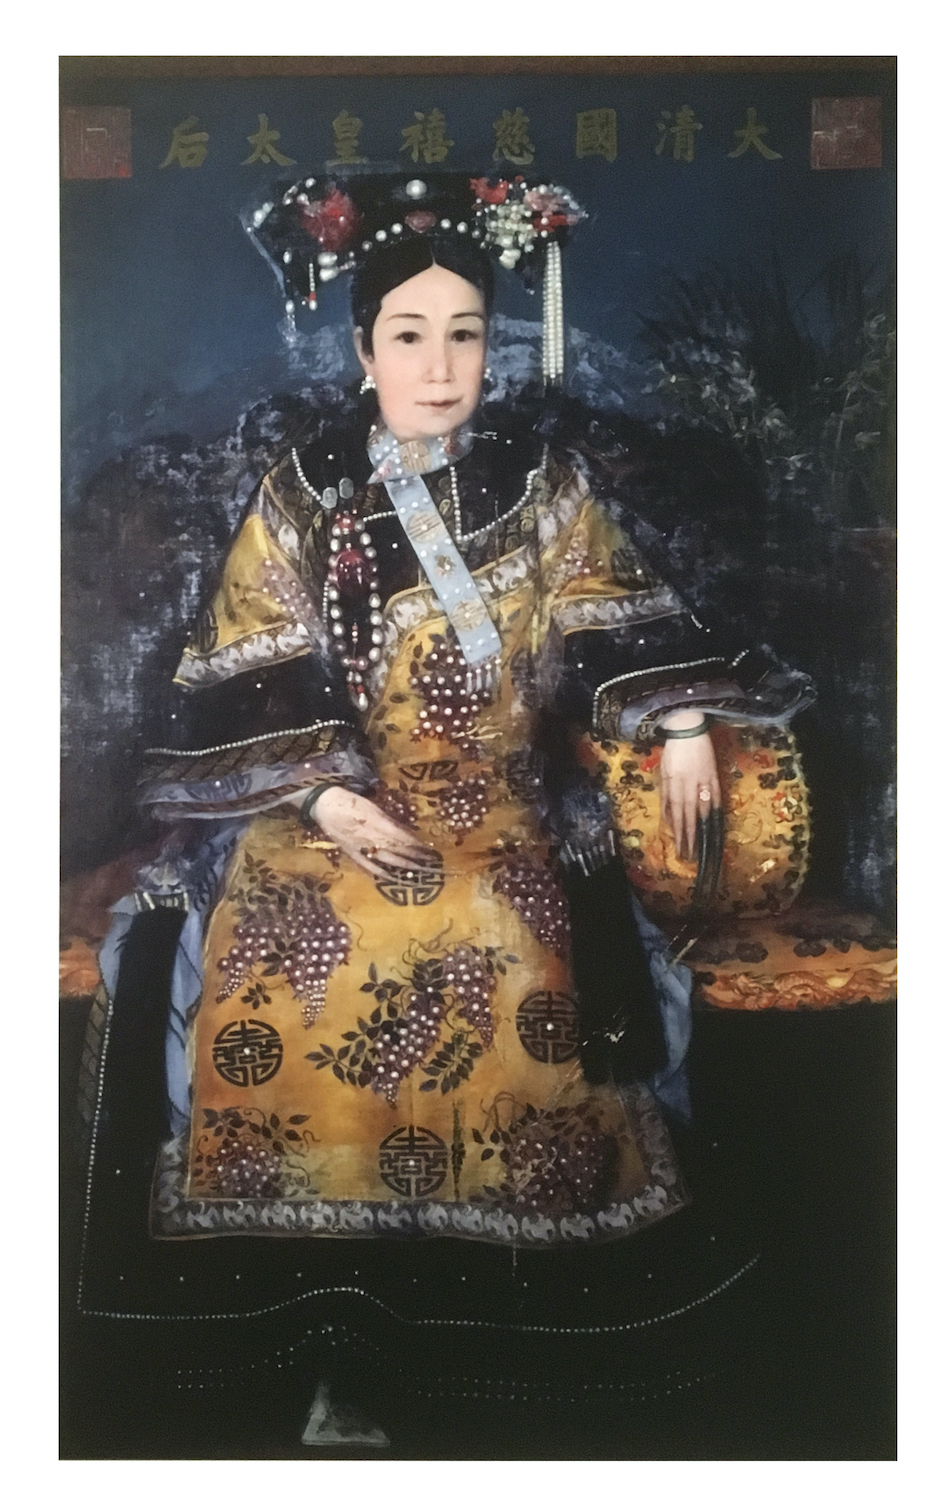 painting of Empress Dowager Cixi, Tongzhi Emperor's mother sitting in chair dressed in gold and black imperial clothing.